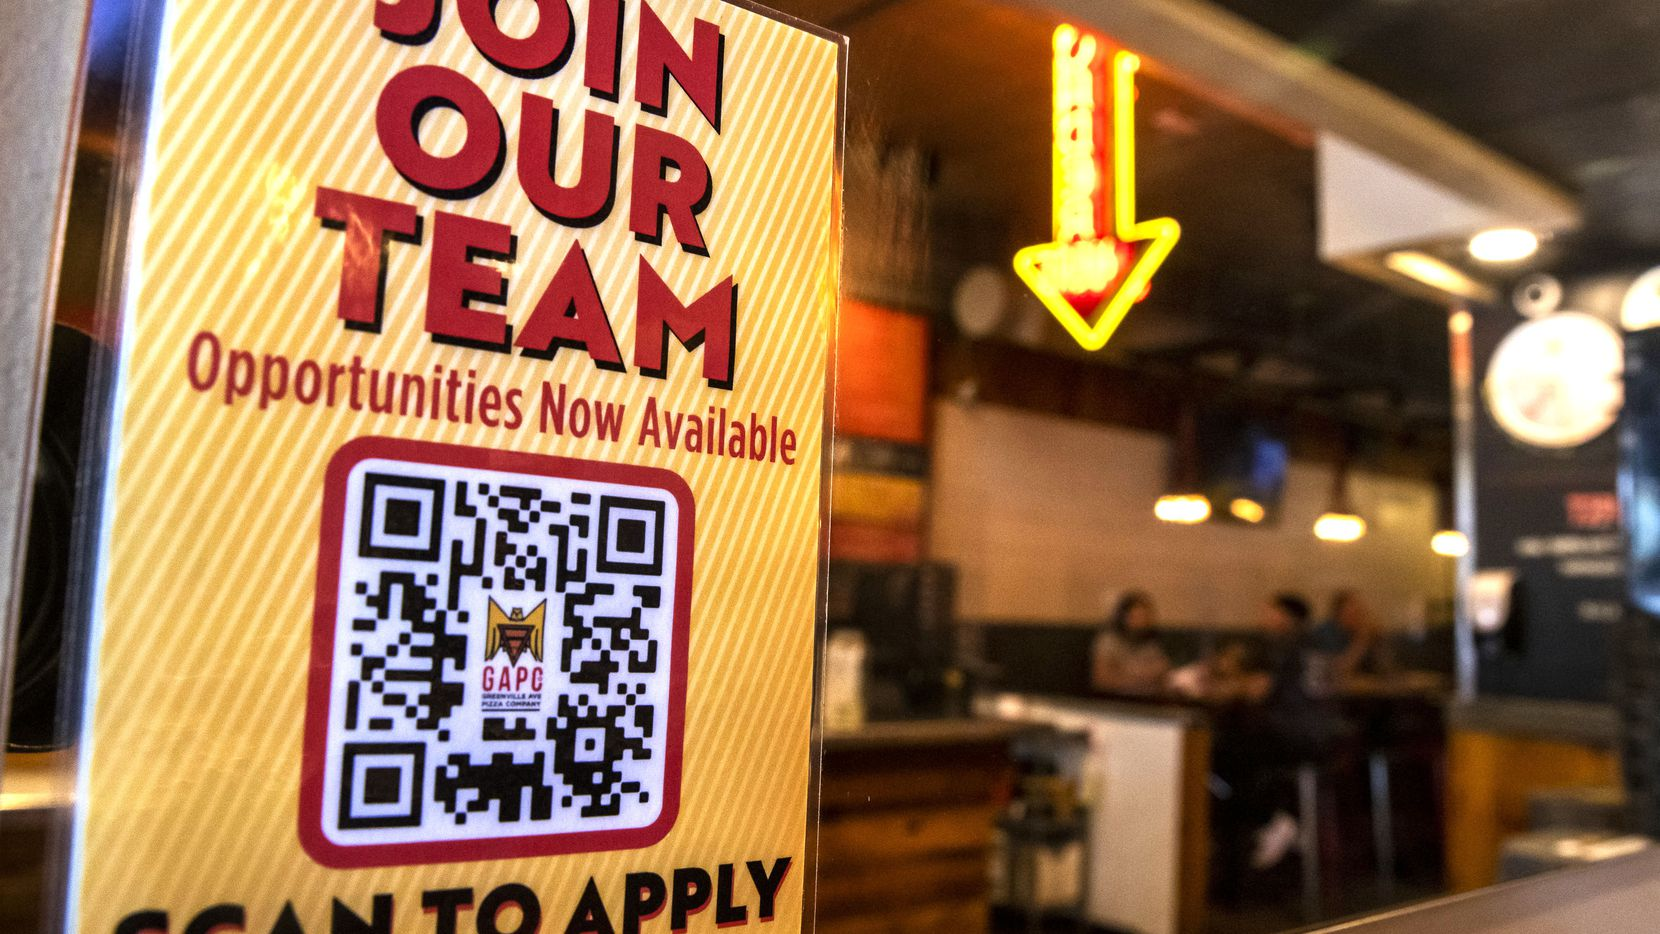 The U.S. had over 9 million job openings in April, in part because nearly 4 million people quit their jobs that month. The turnover in the labor market is the highest on record and an optimistic sign that workers are ready to make a move for the post-pandemic world.